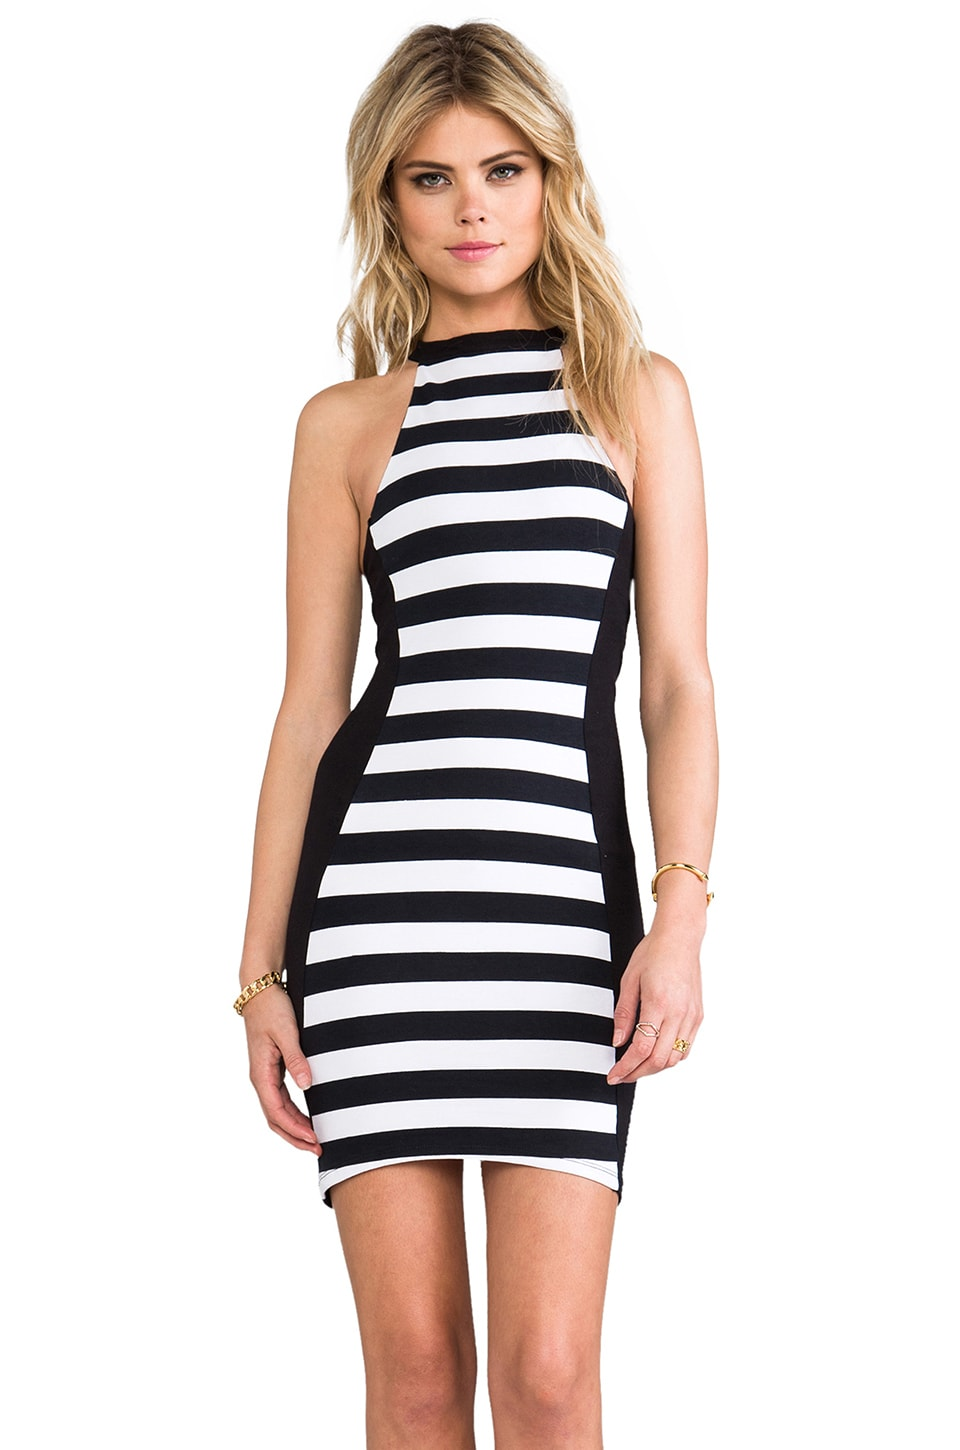 FAIRGROUND Stripe Scuba Dress in Black & White